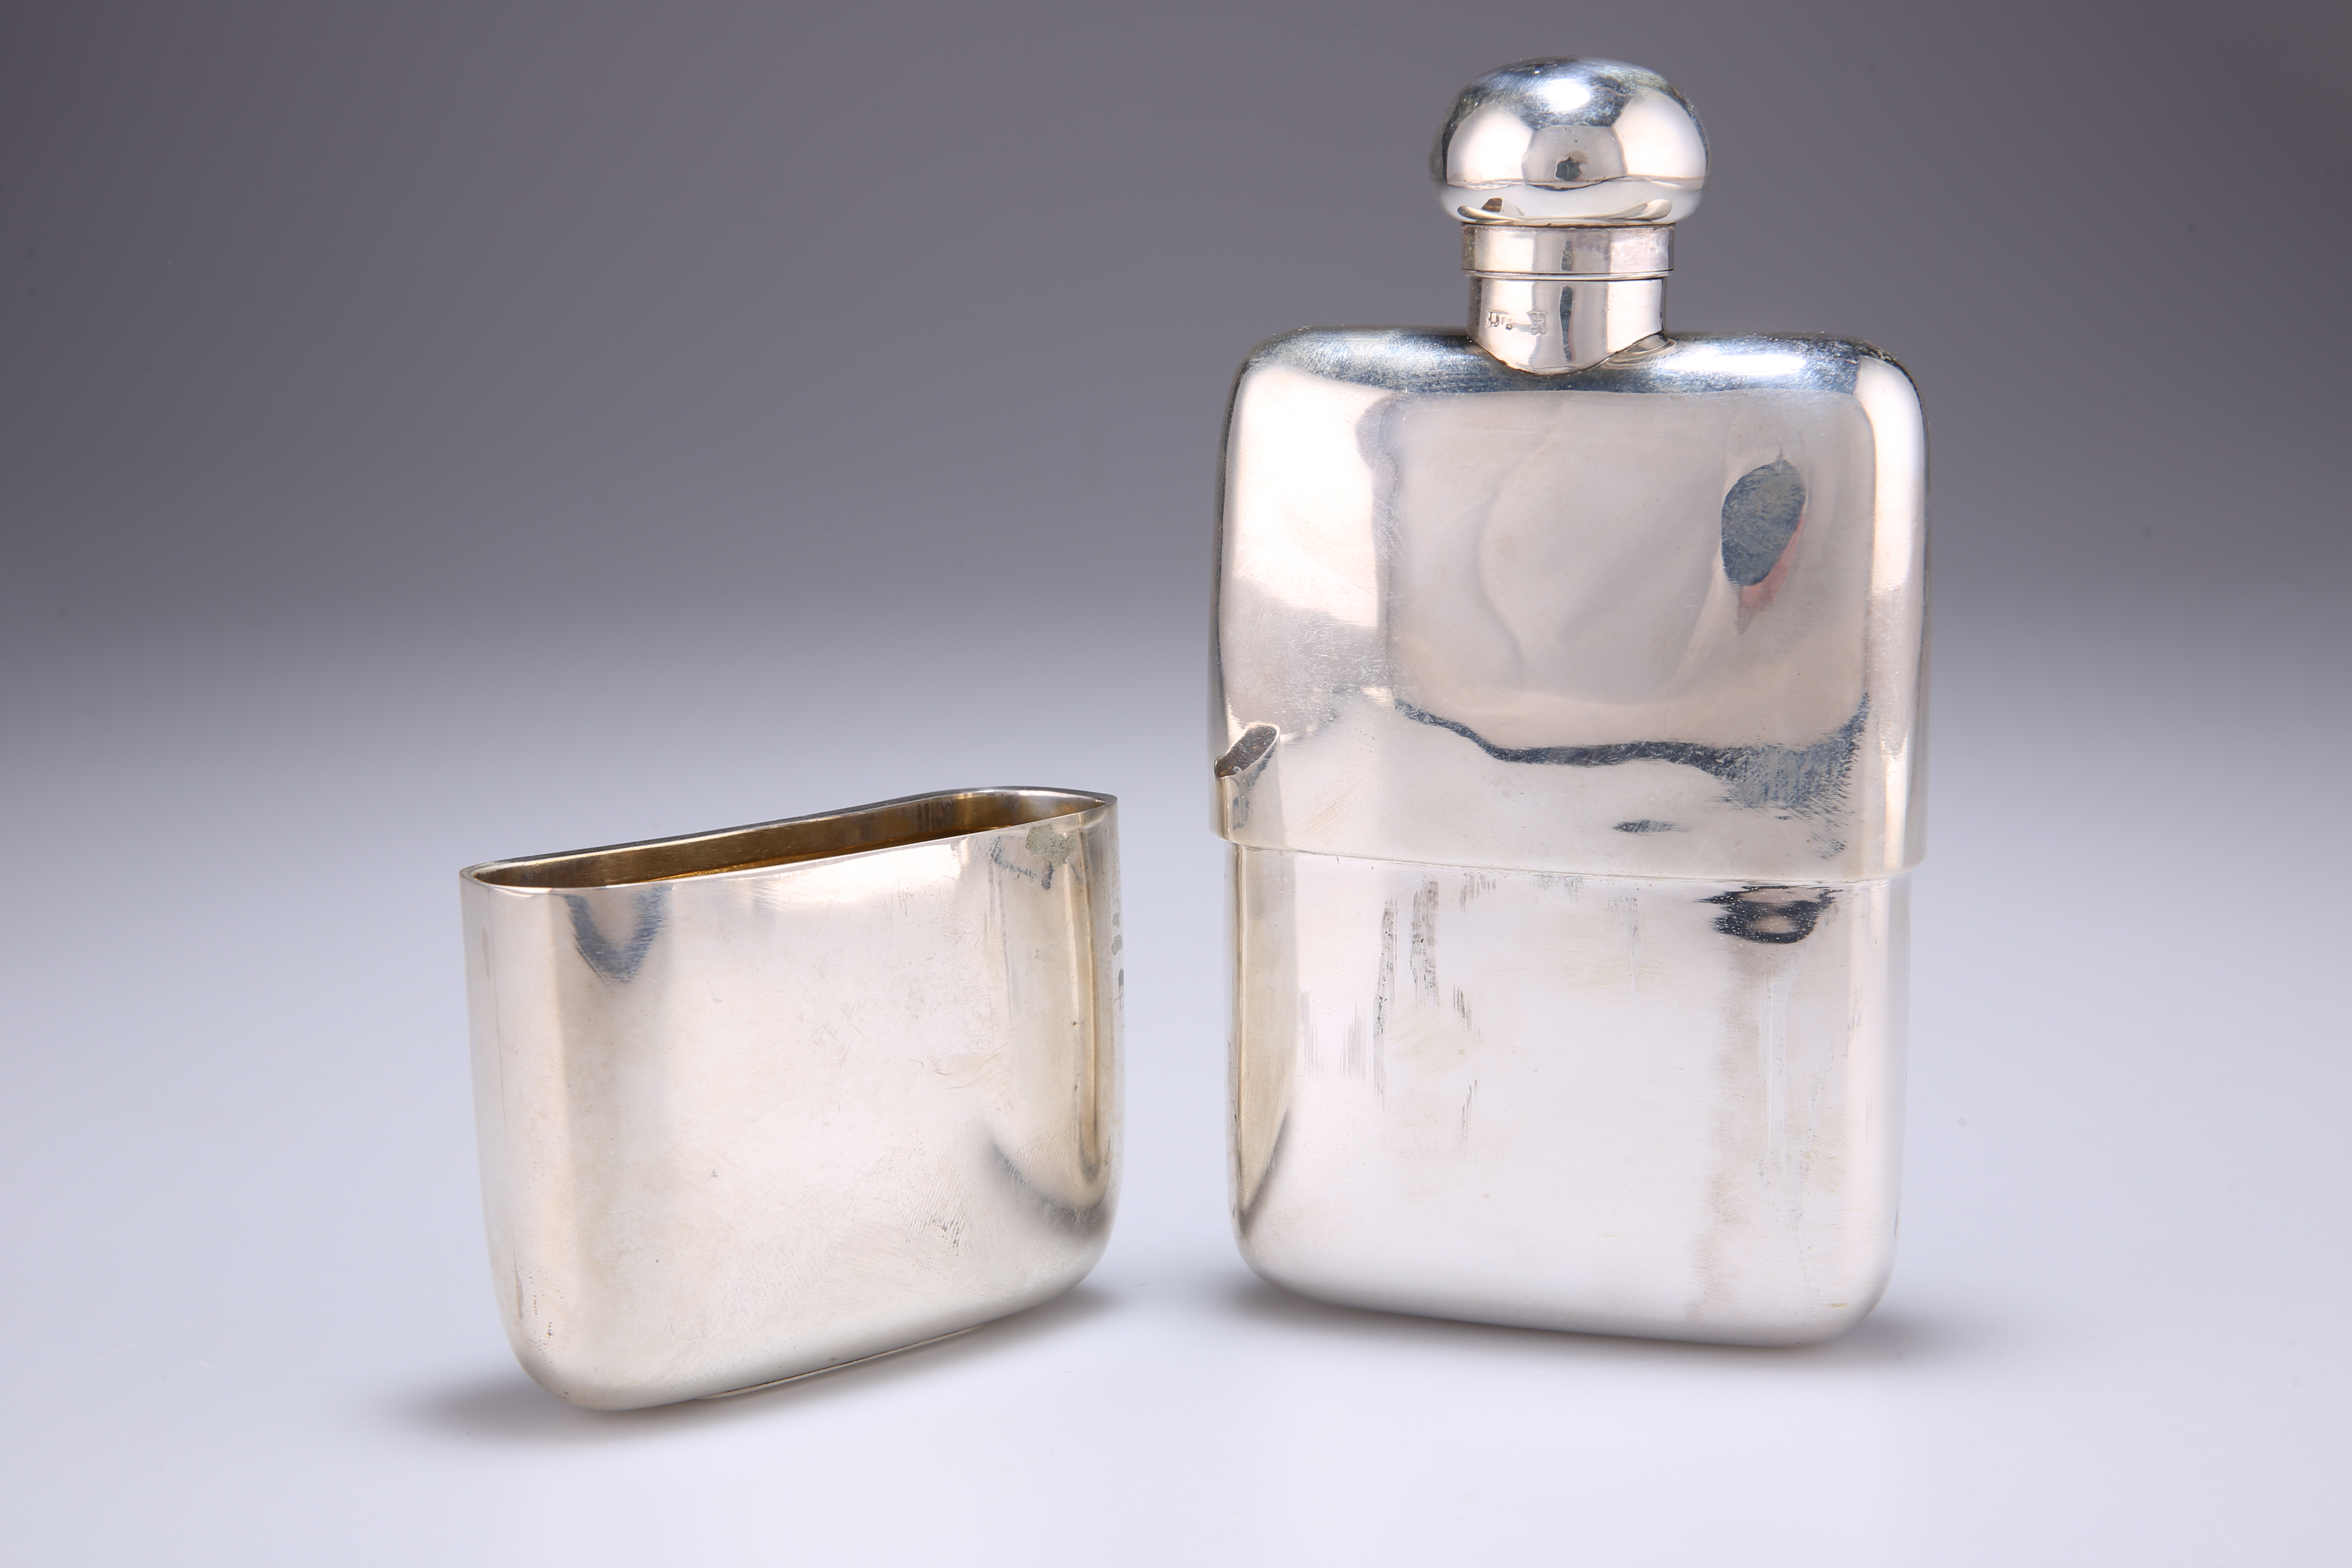 A GEORGE V SILVER HIP FLASK AND CUP - Image 2 of 4